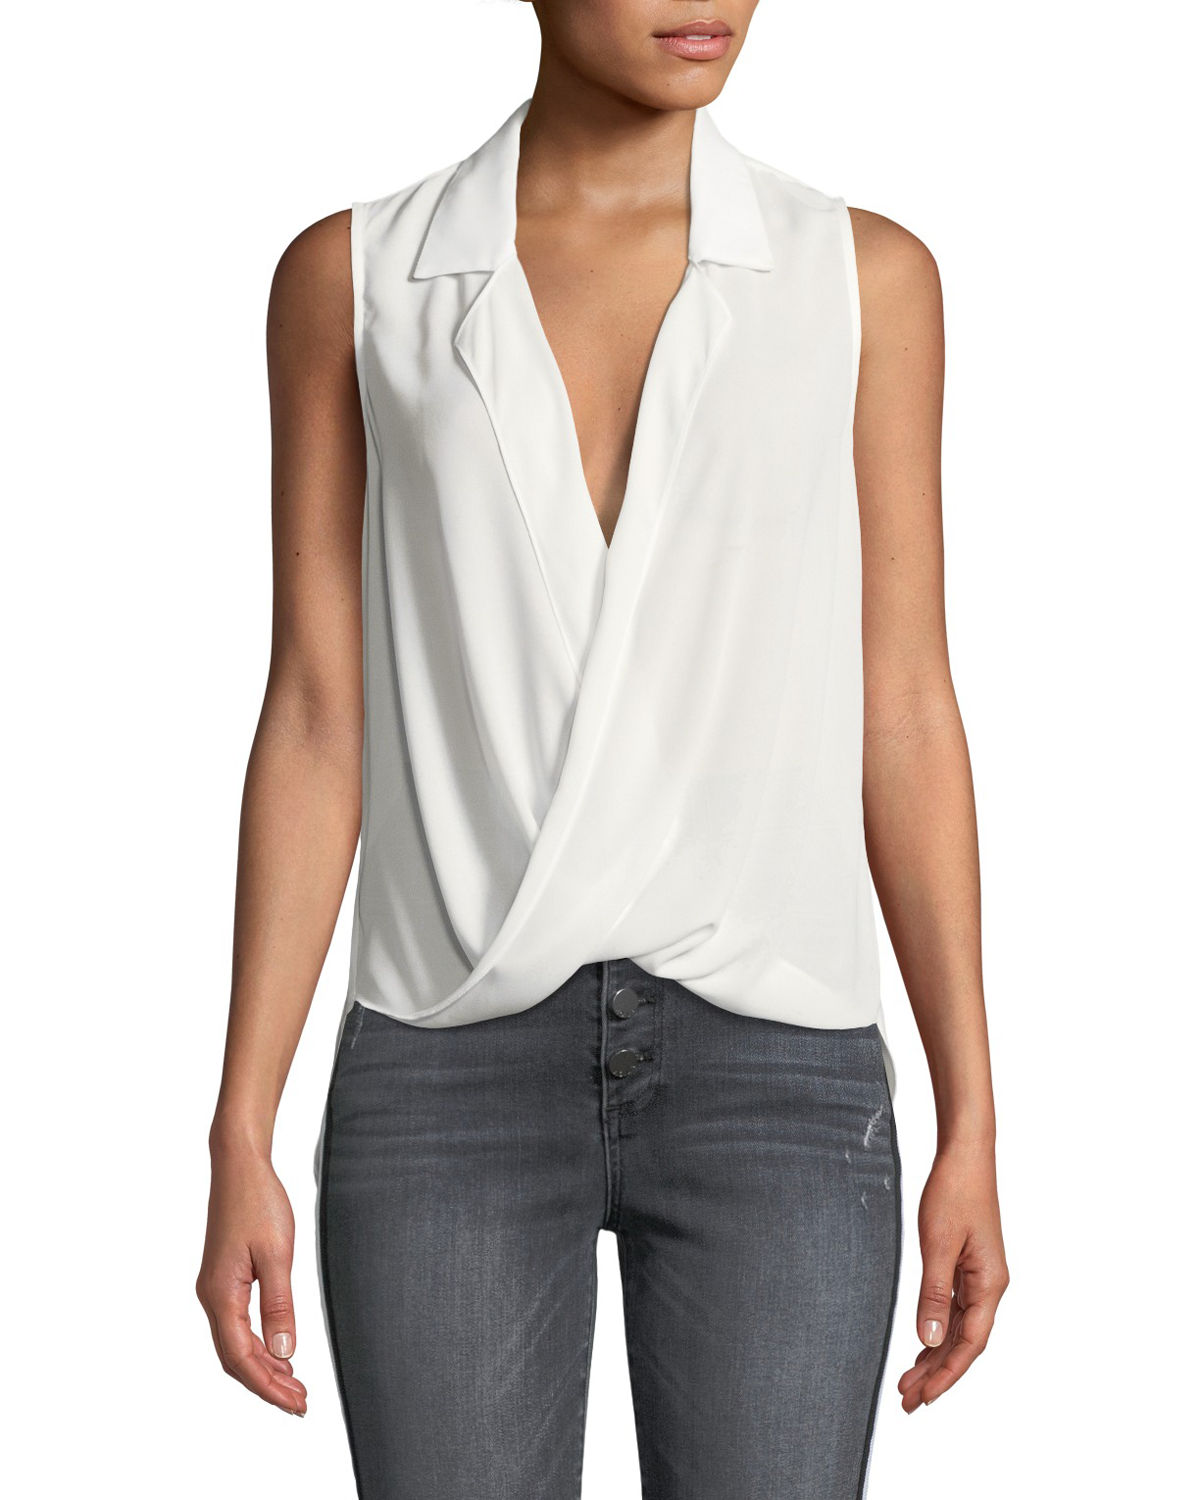 Likely MASON DRAPED GEORGETTE SLEEVELESS TOP